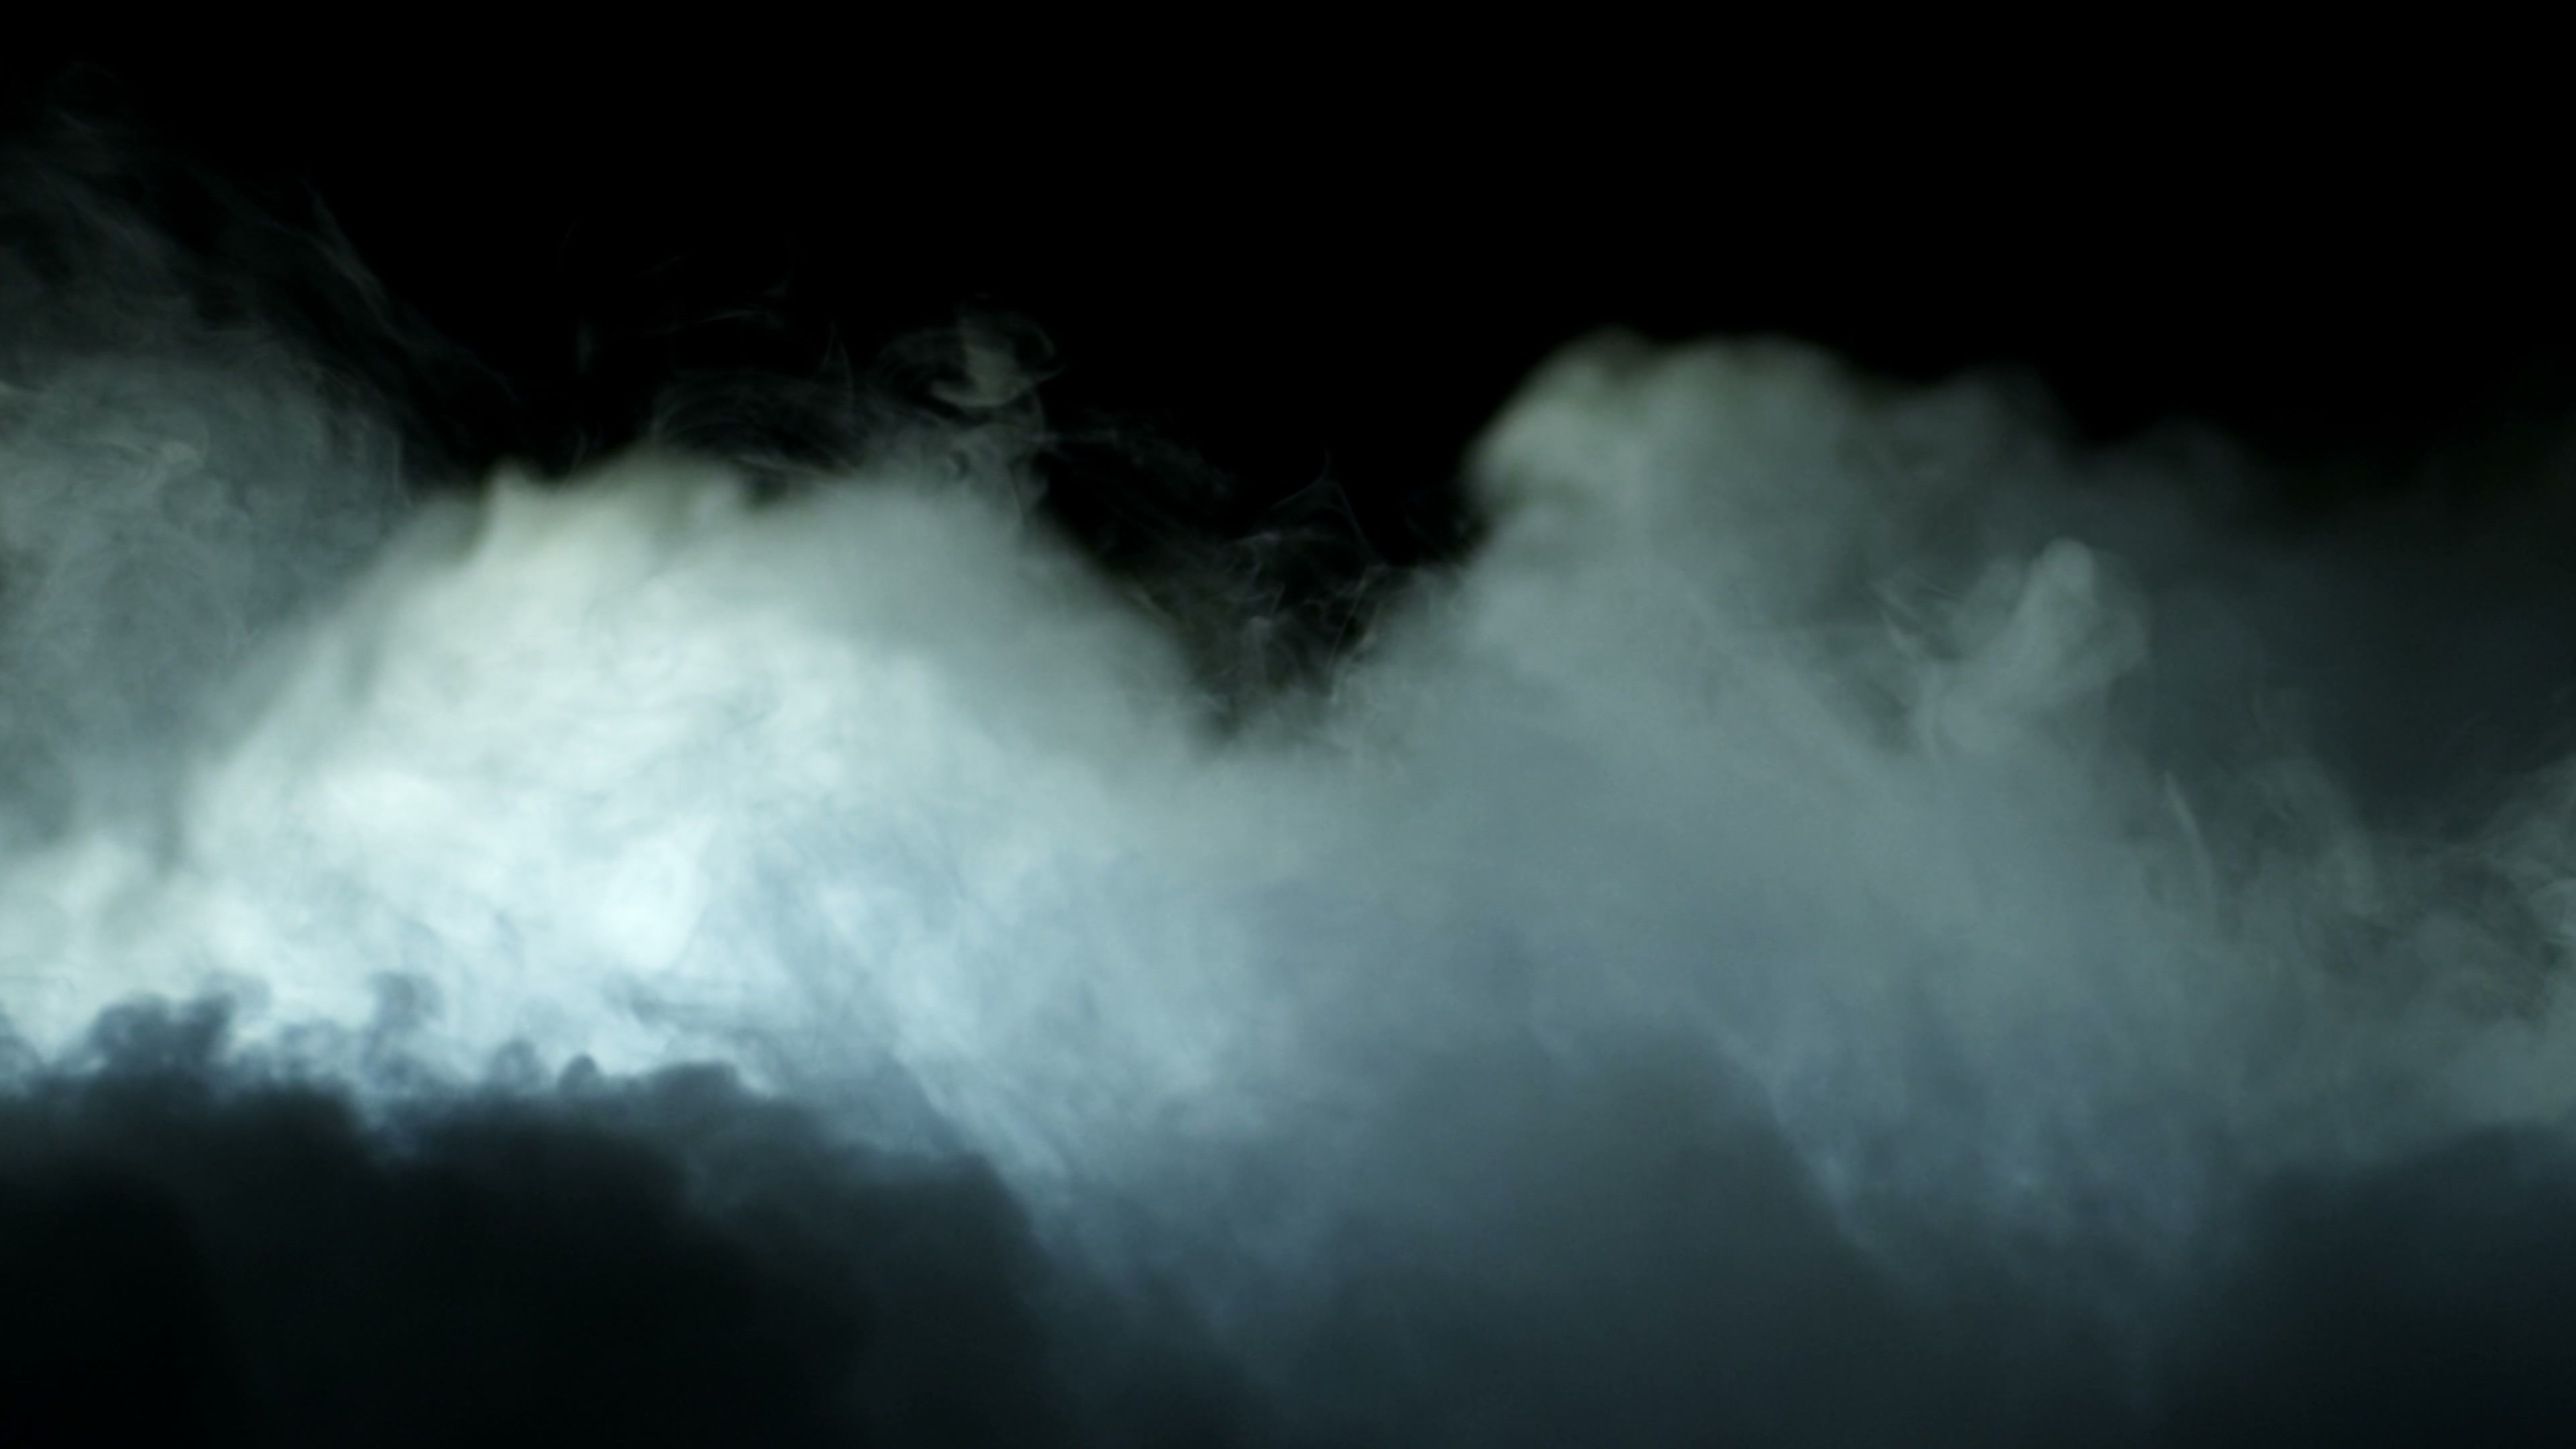 Realistic Dry Ice Smoke Clouds Fog Overlay Stock Footage